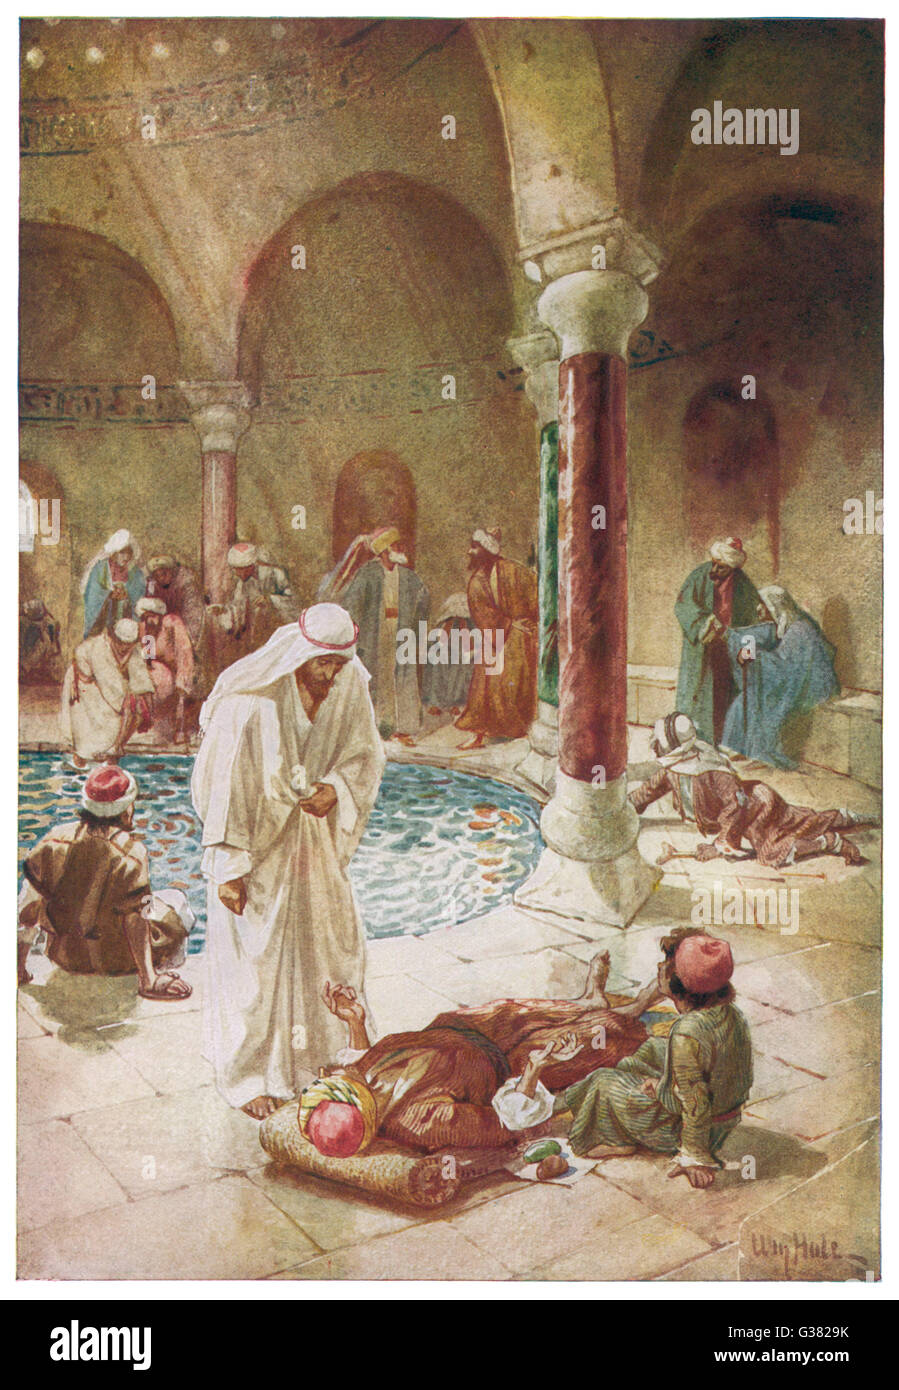 Jesus heals a crippled man at  the Pool of Bethesda, in Jerusalem - Stock Image